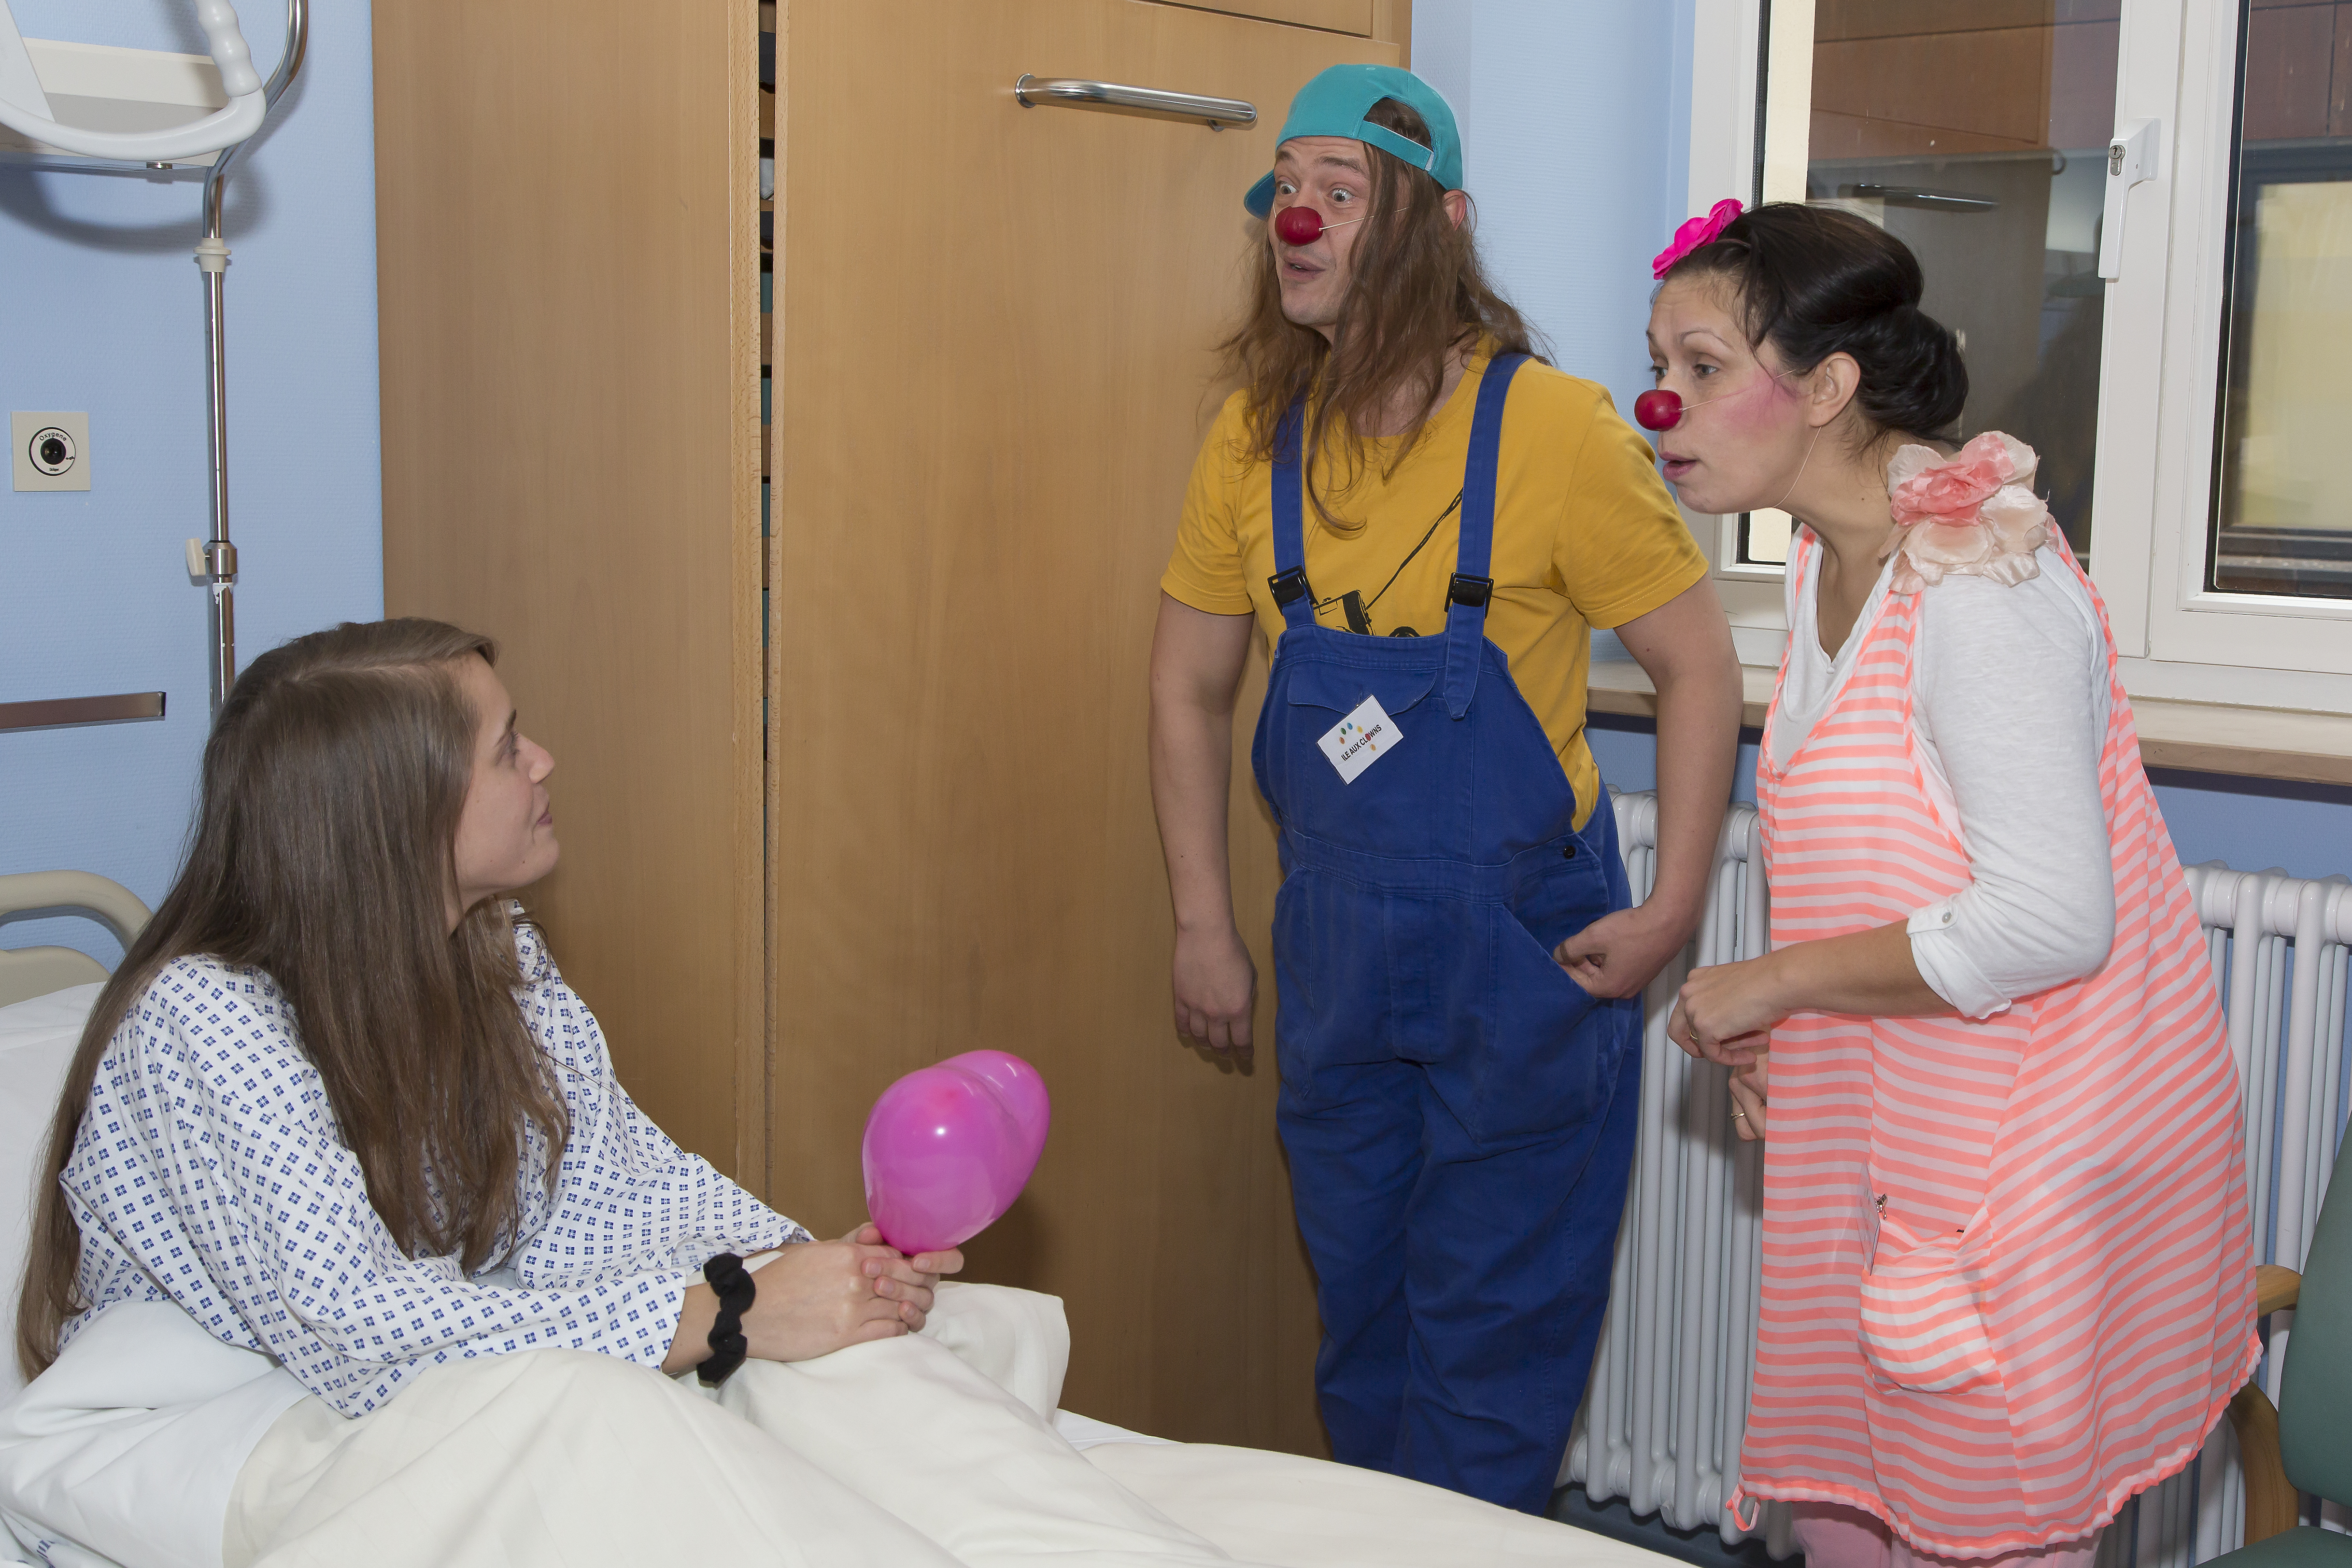 Clowns making a young girl laugh